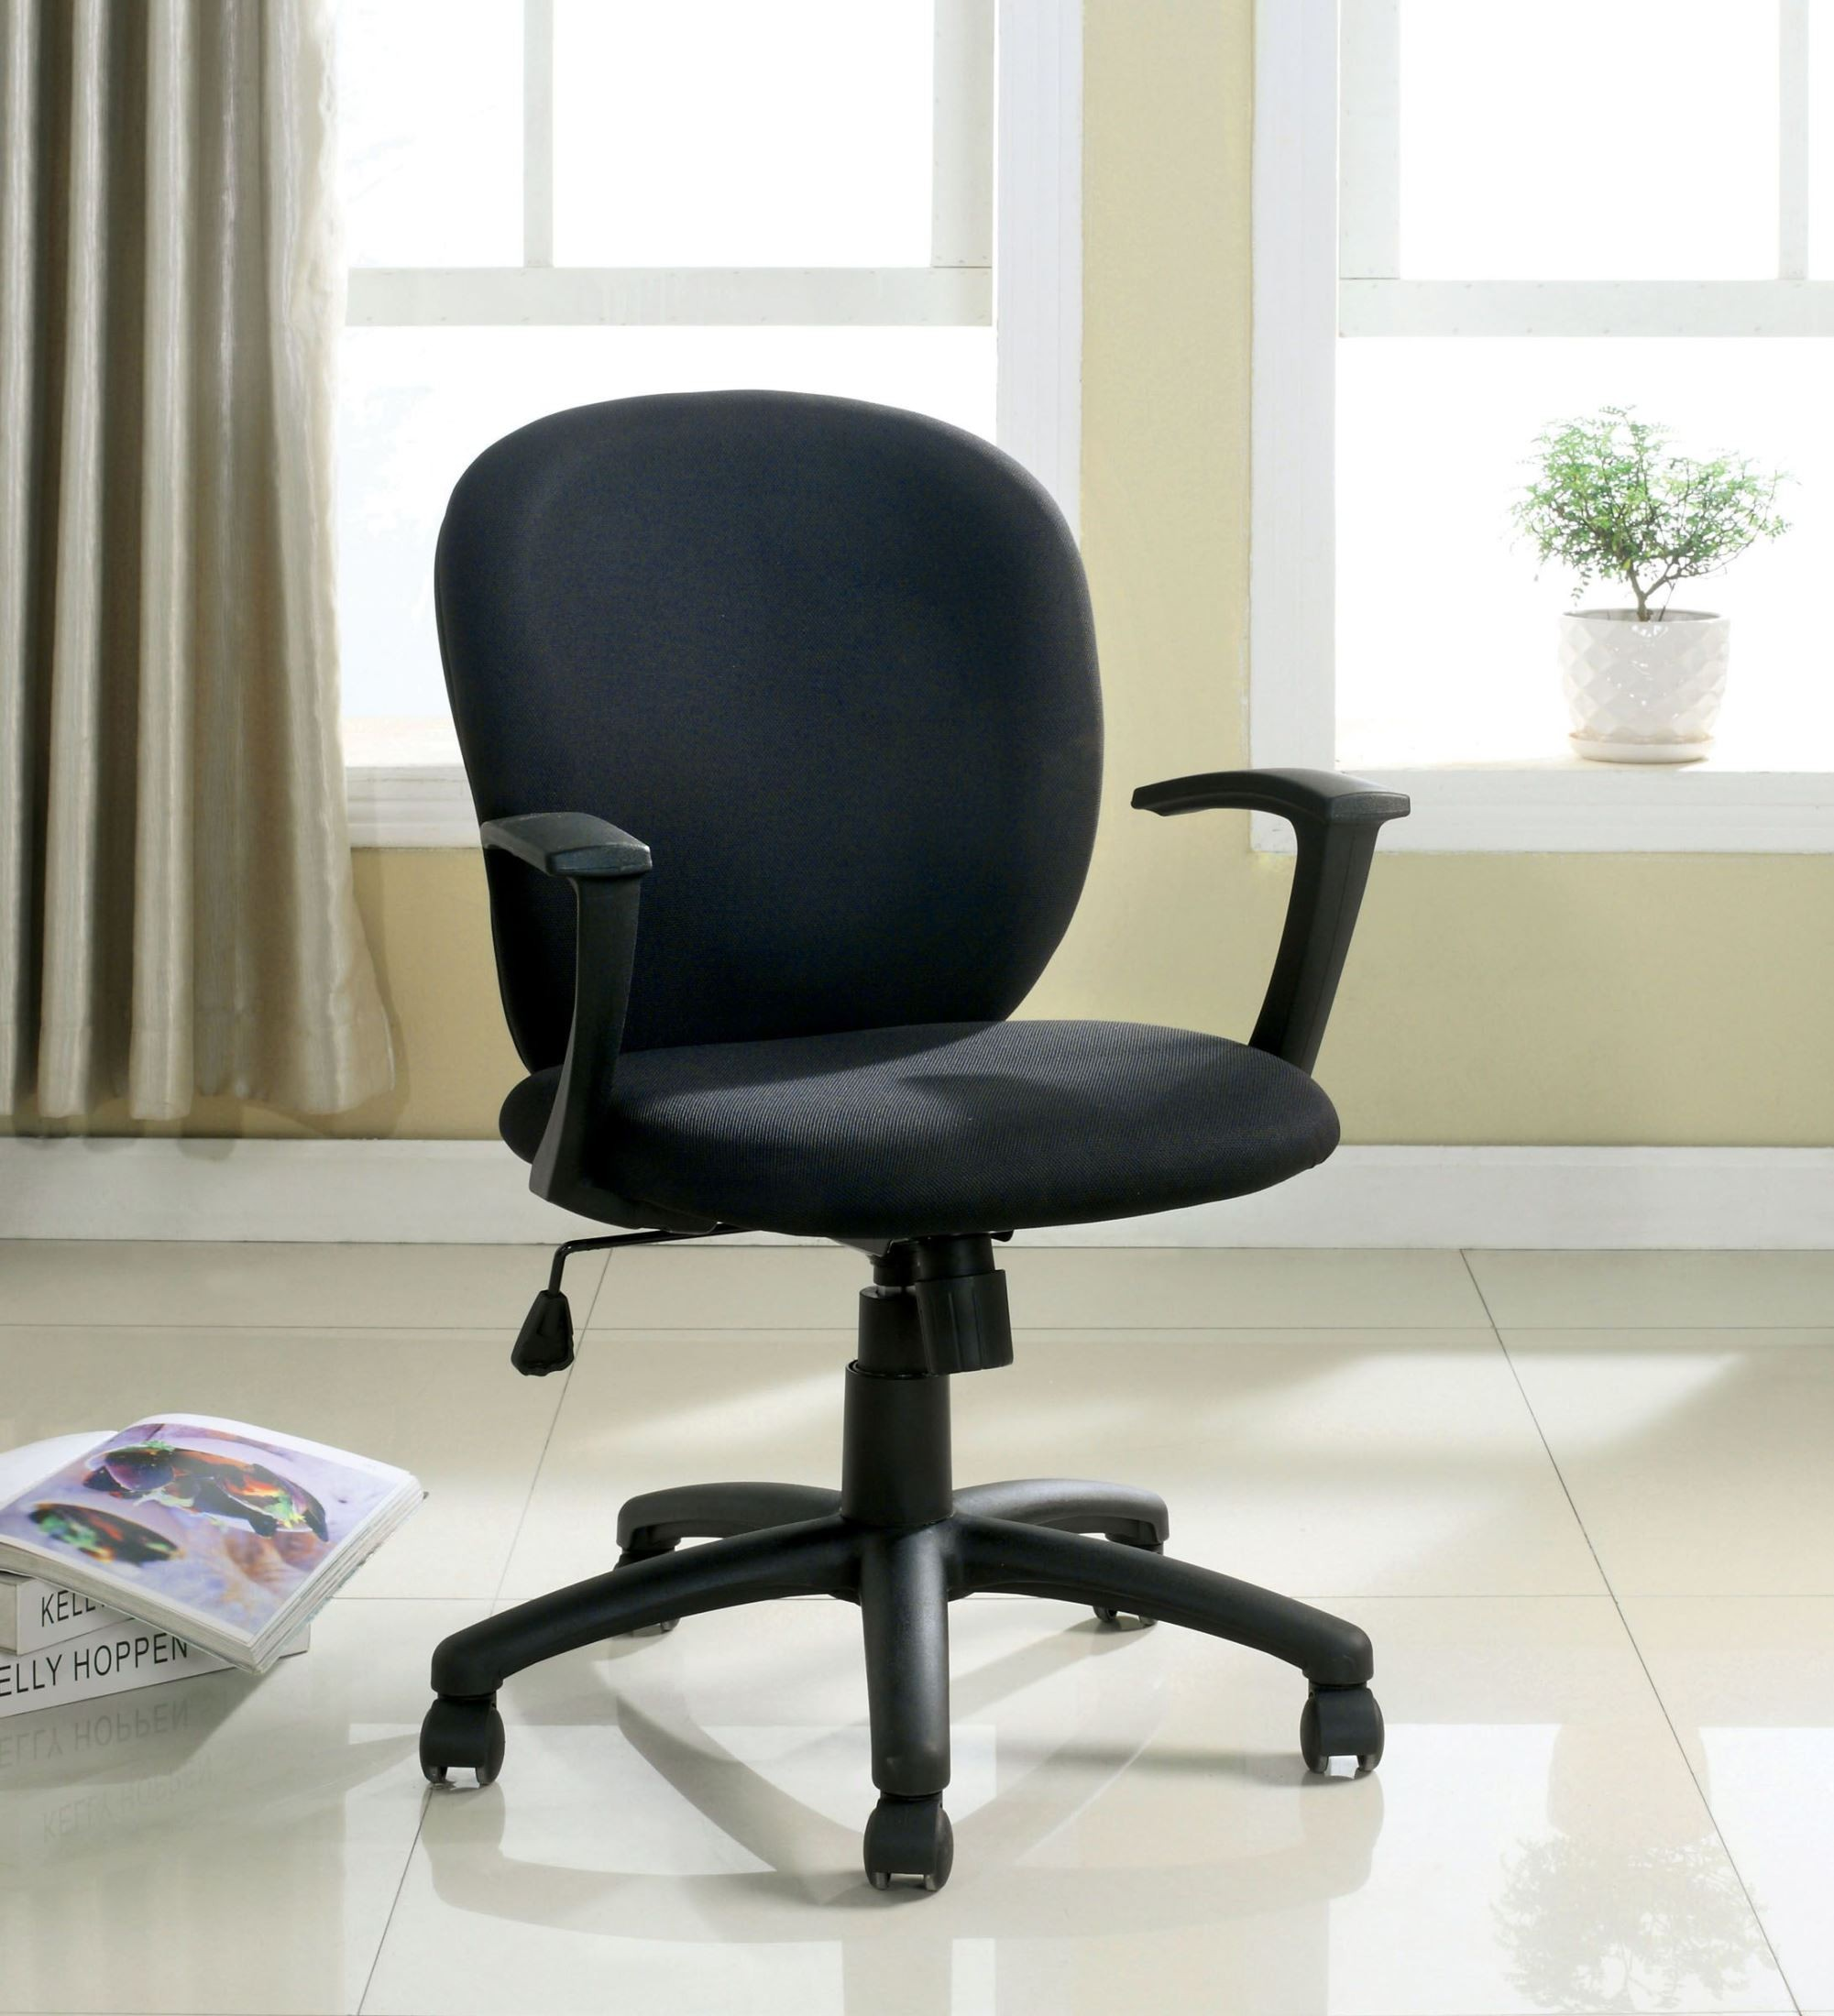 fabric for office chair upholstery bedroom big w polloc black from furniture of america